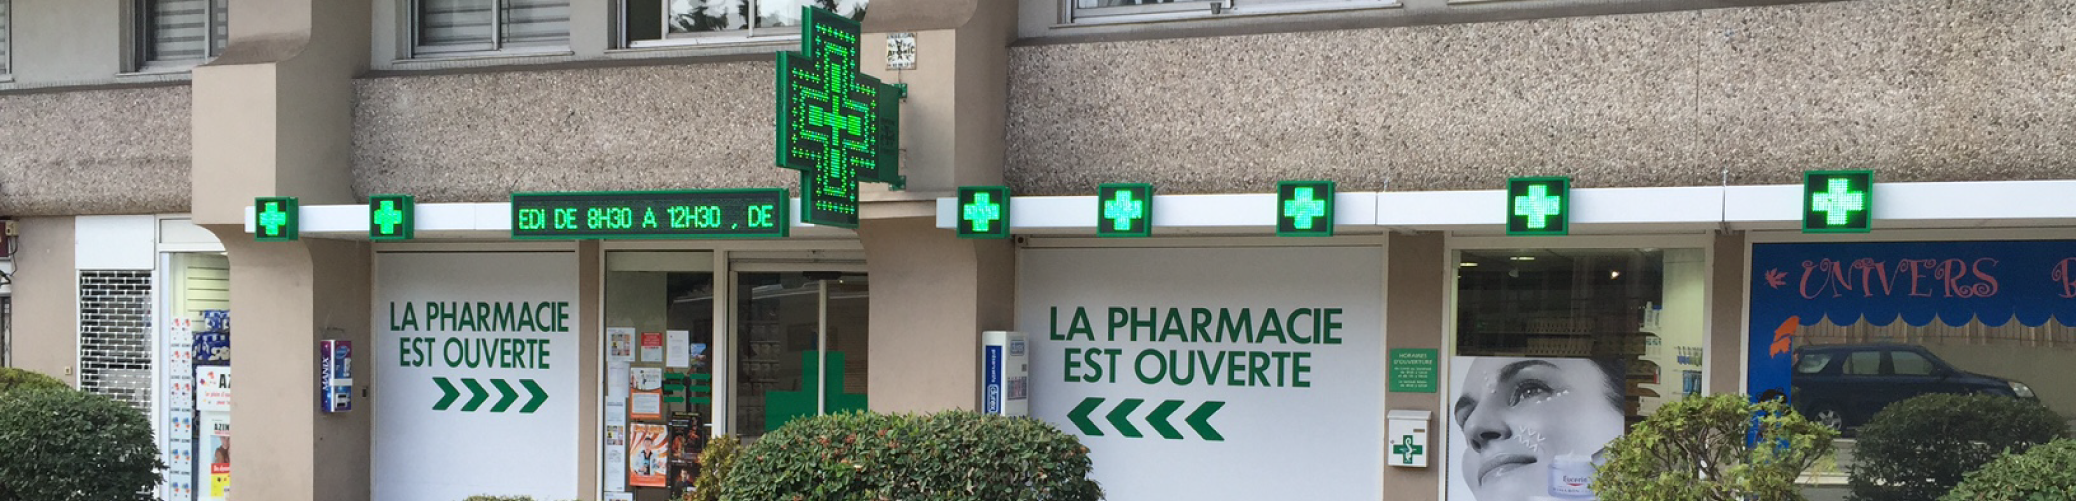 CROIX DE PHARMACIES